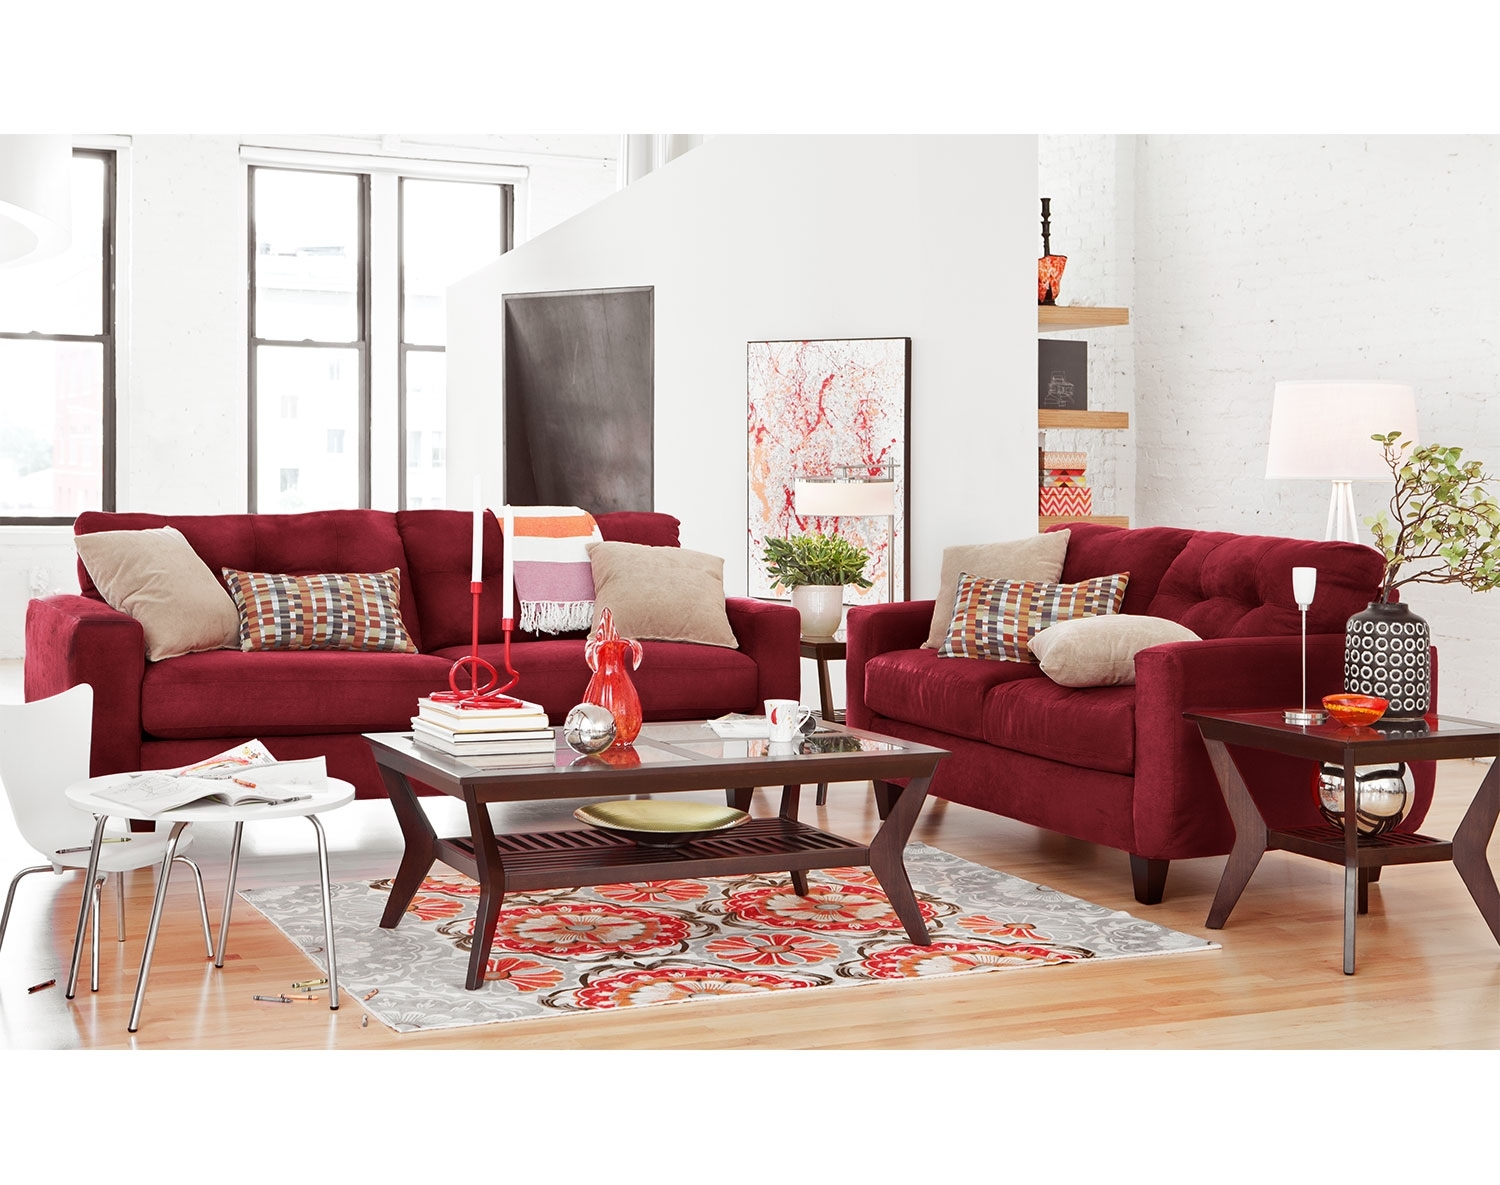 Living Room Collections Value City Furniture : 392522 from www.valuecityfurniture.com size 1500 x 1185 jpeg 302kB